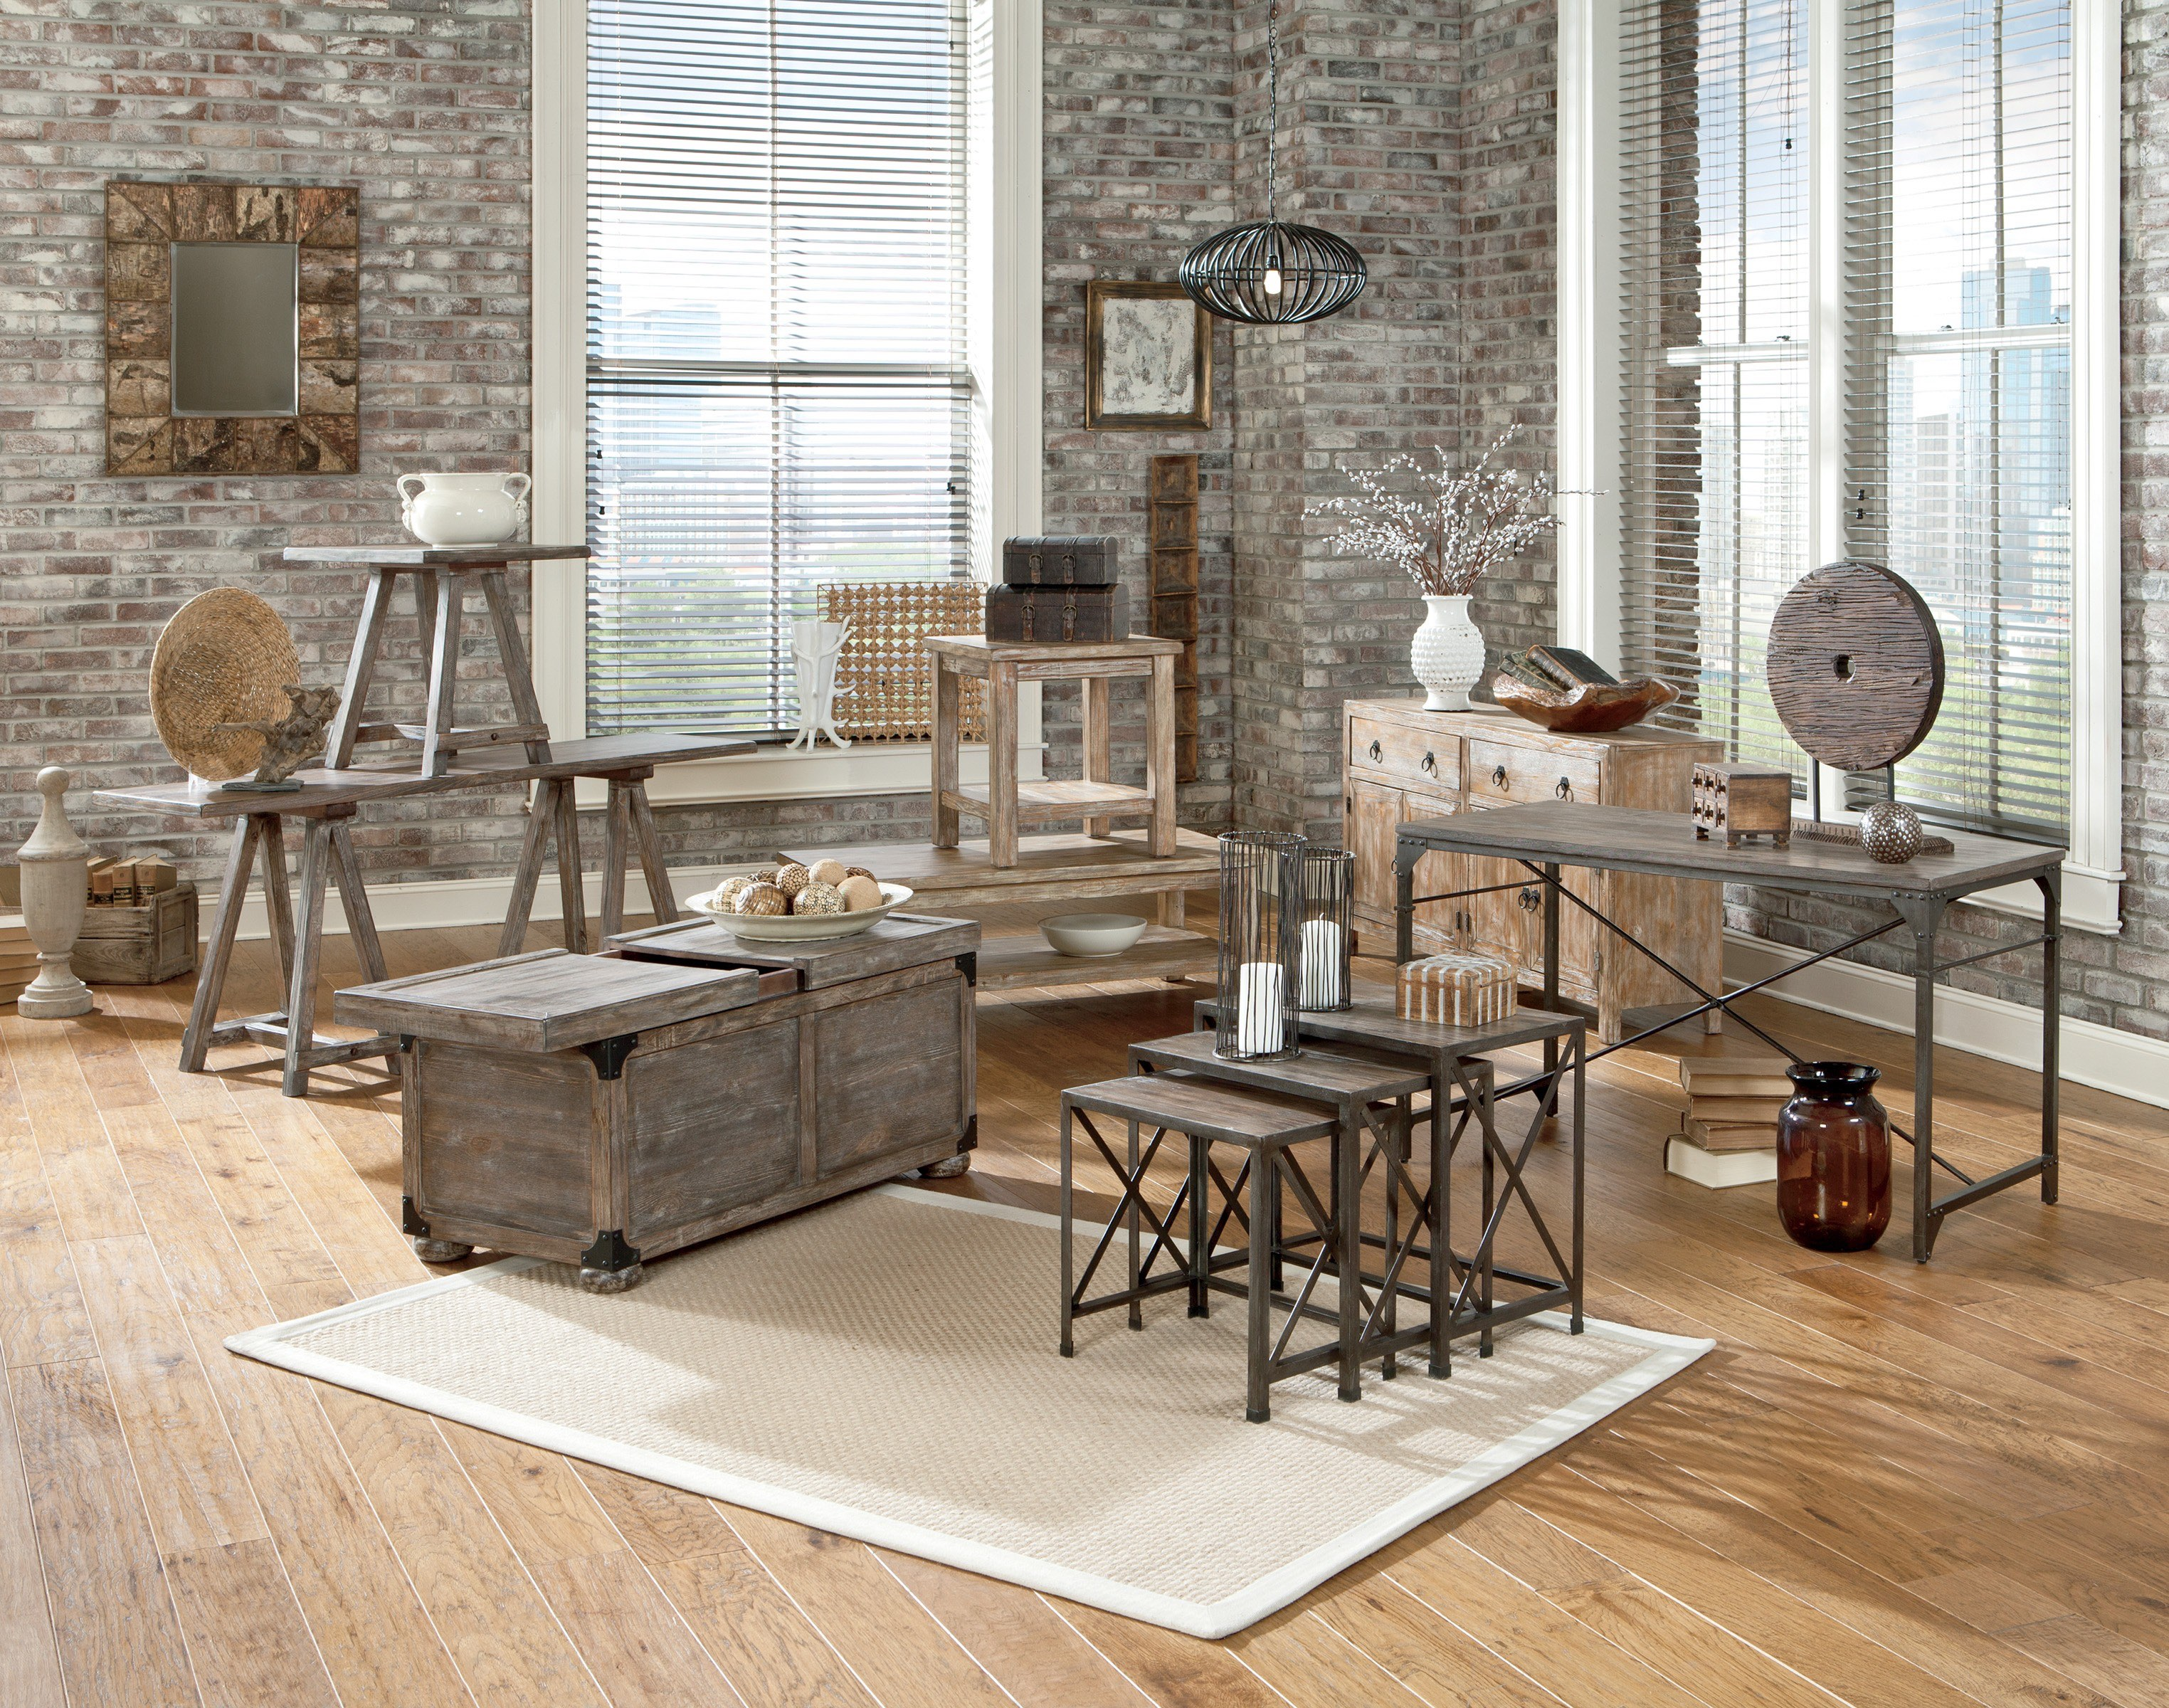 Rustic Color Schemes Rustic Color Schemes For Your Home Storehouse Salvage Blog